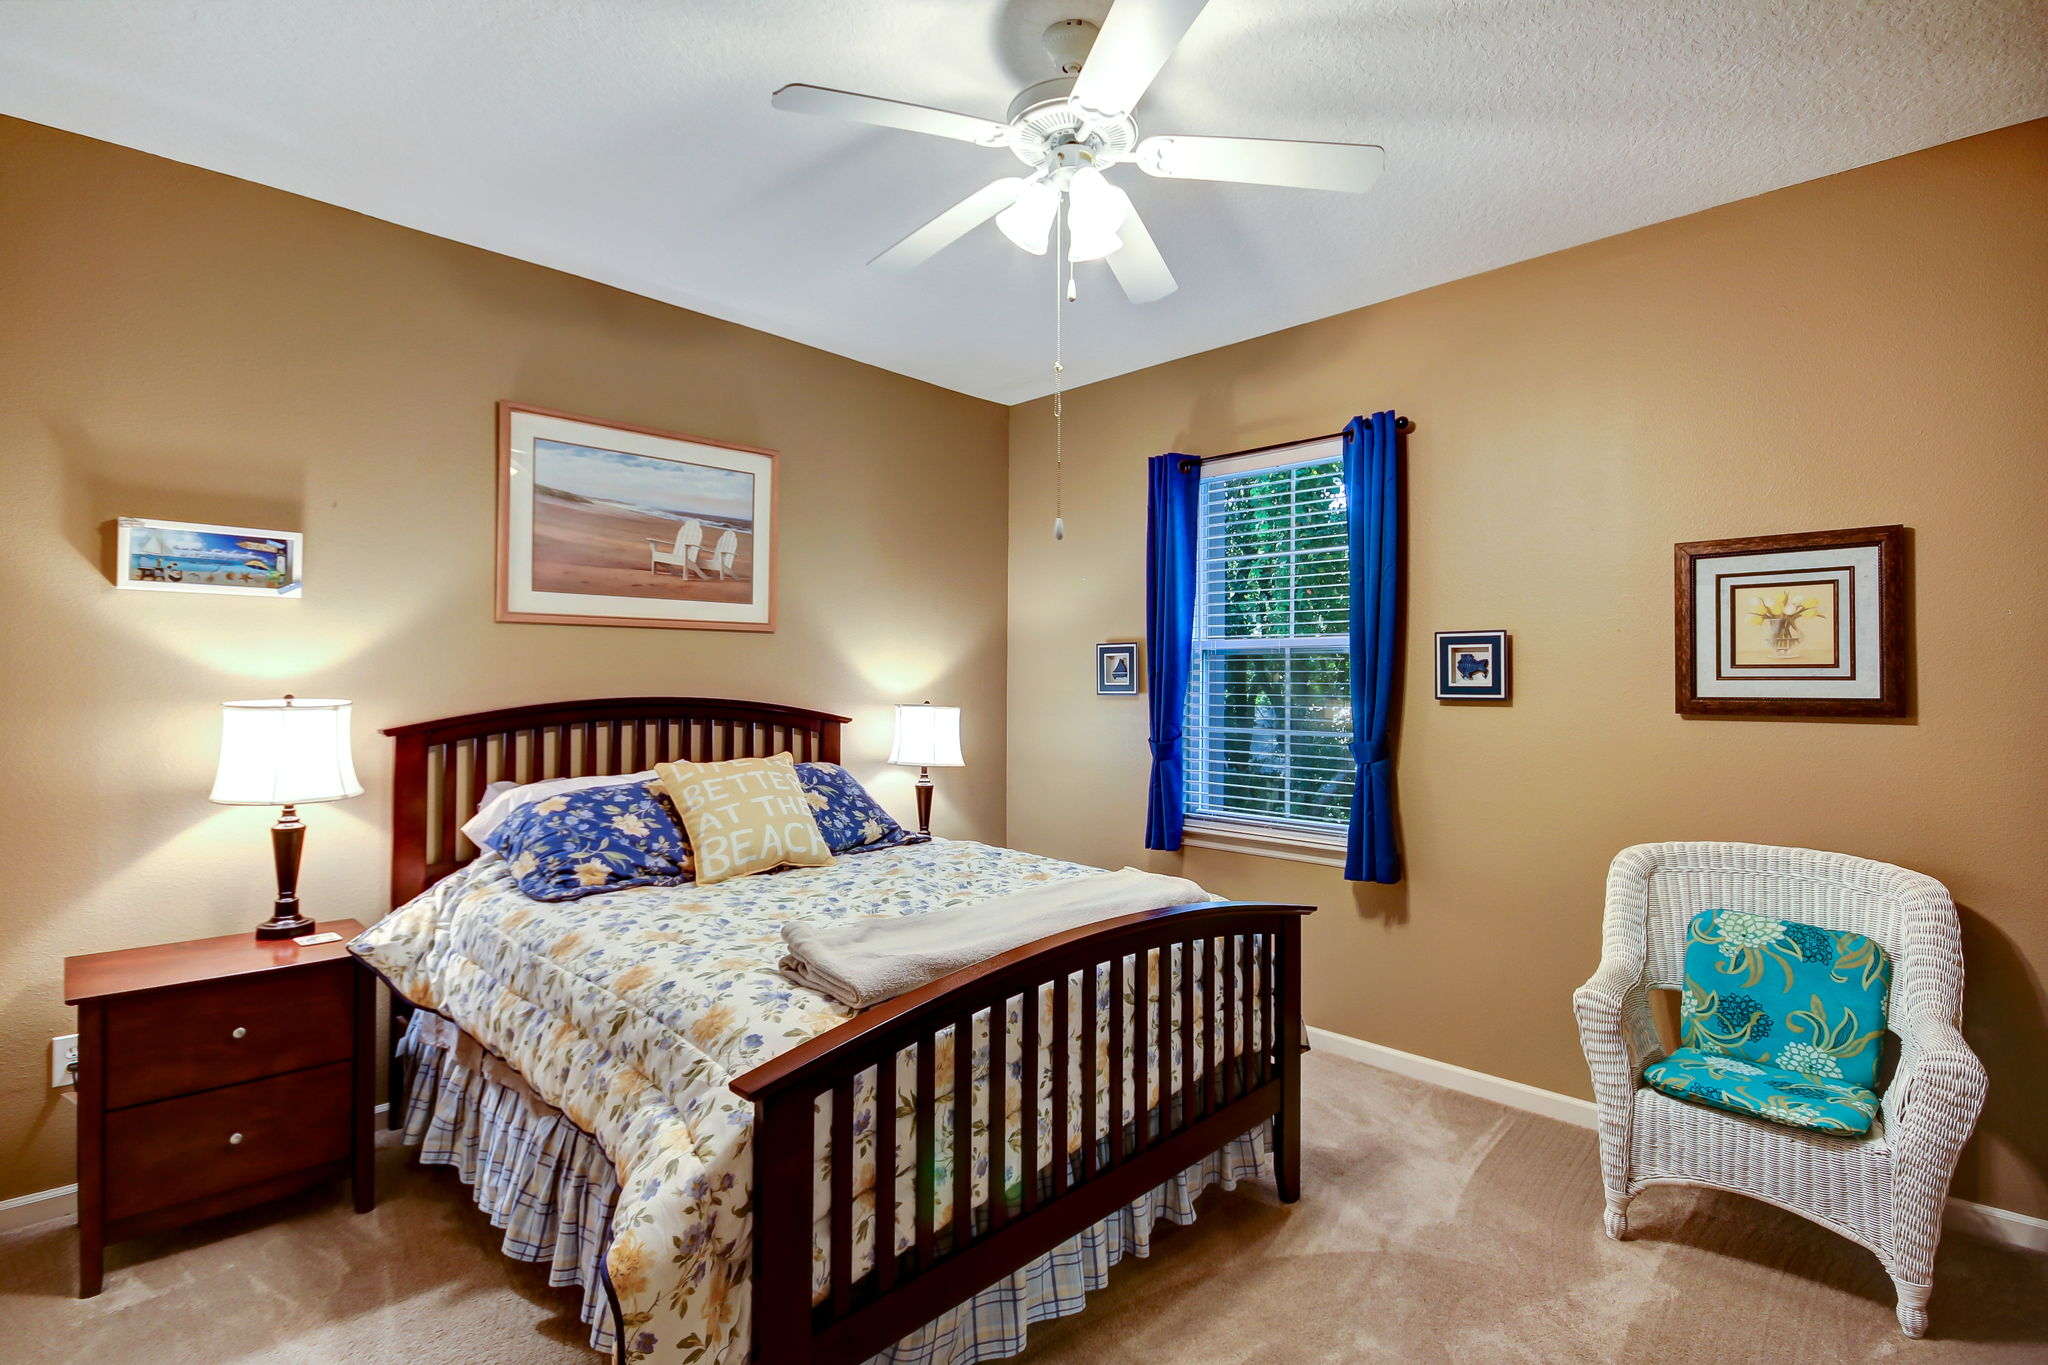 Third guest bedroom with ample room for bed, nightstands and accent decor